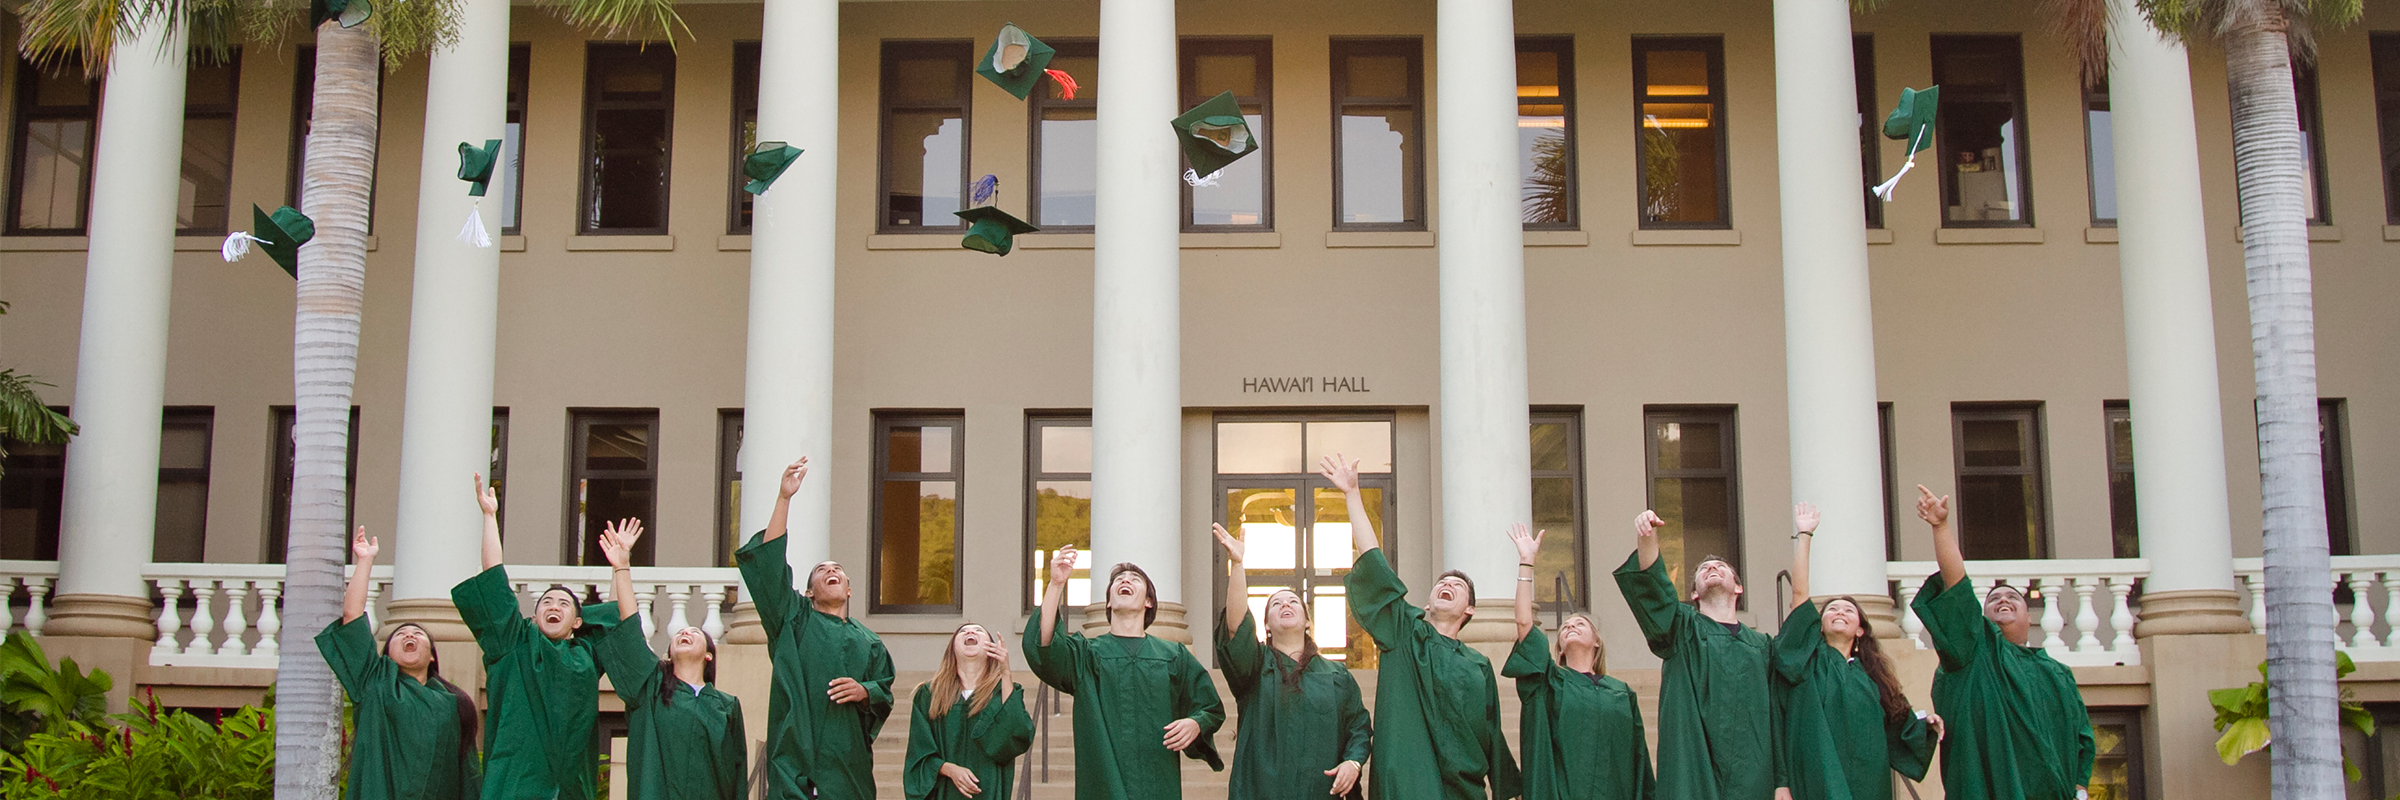 Students in green graduation gown are throwing up their caps in front of Hawaii Hall